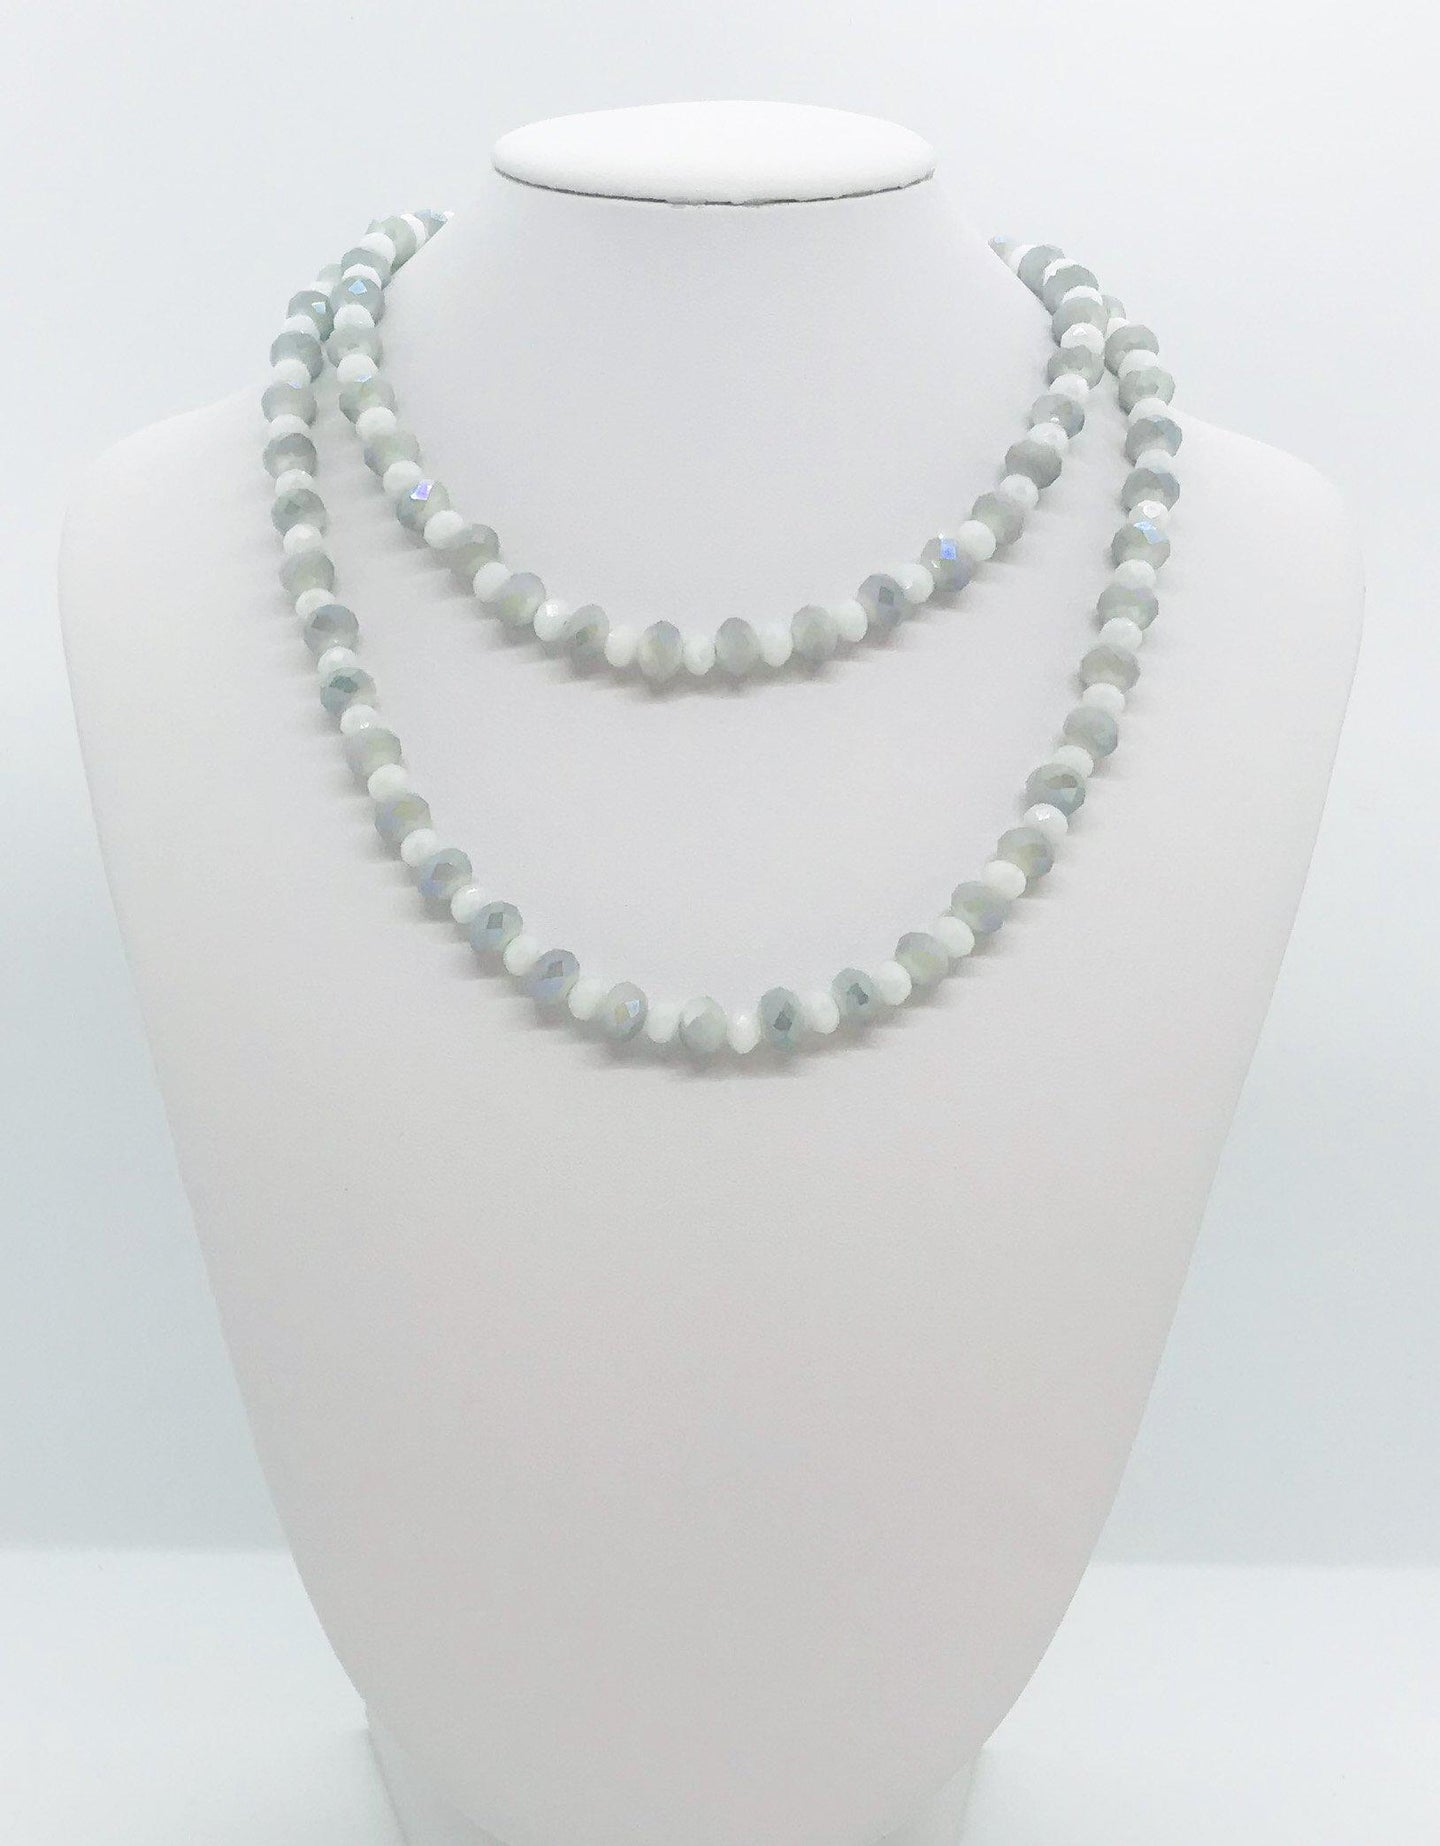 Glass Bead Necklace - N201